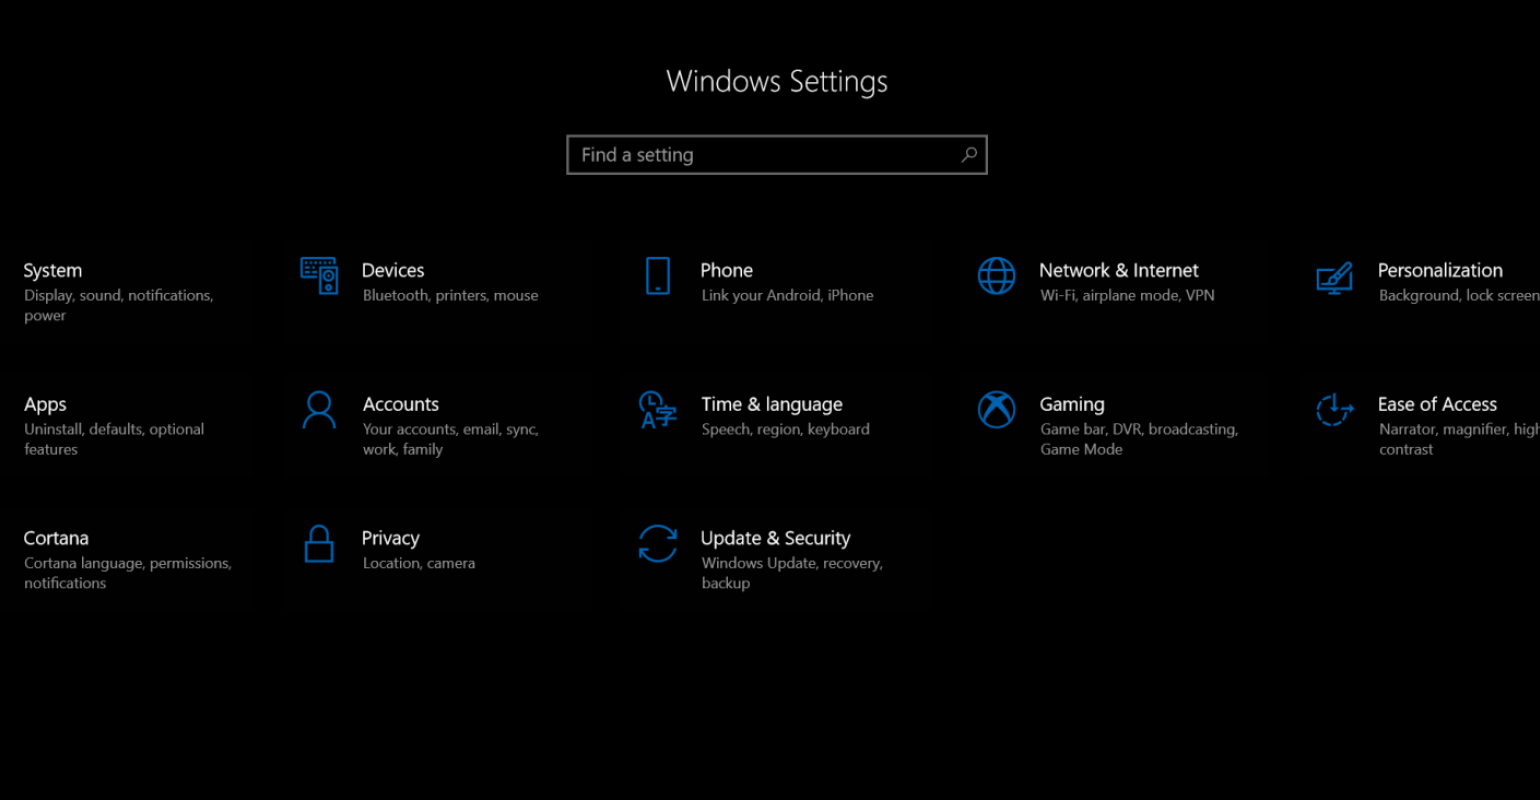 The Windows 10 Control Panel Transformation Continues in